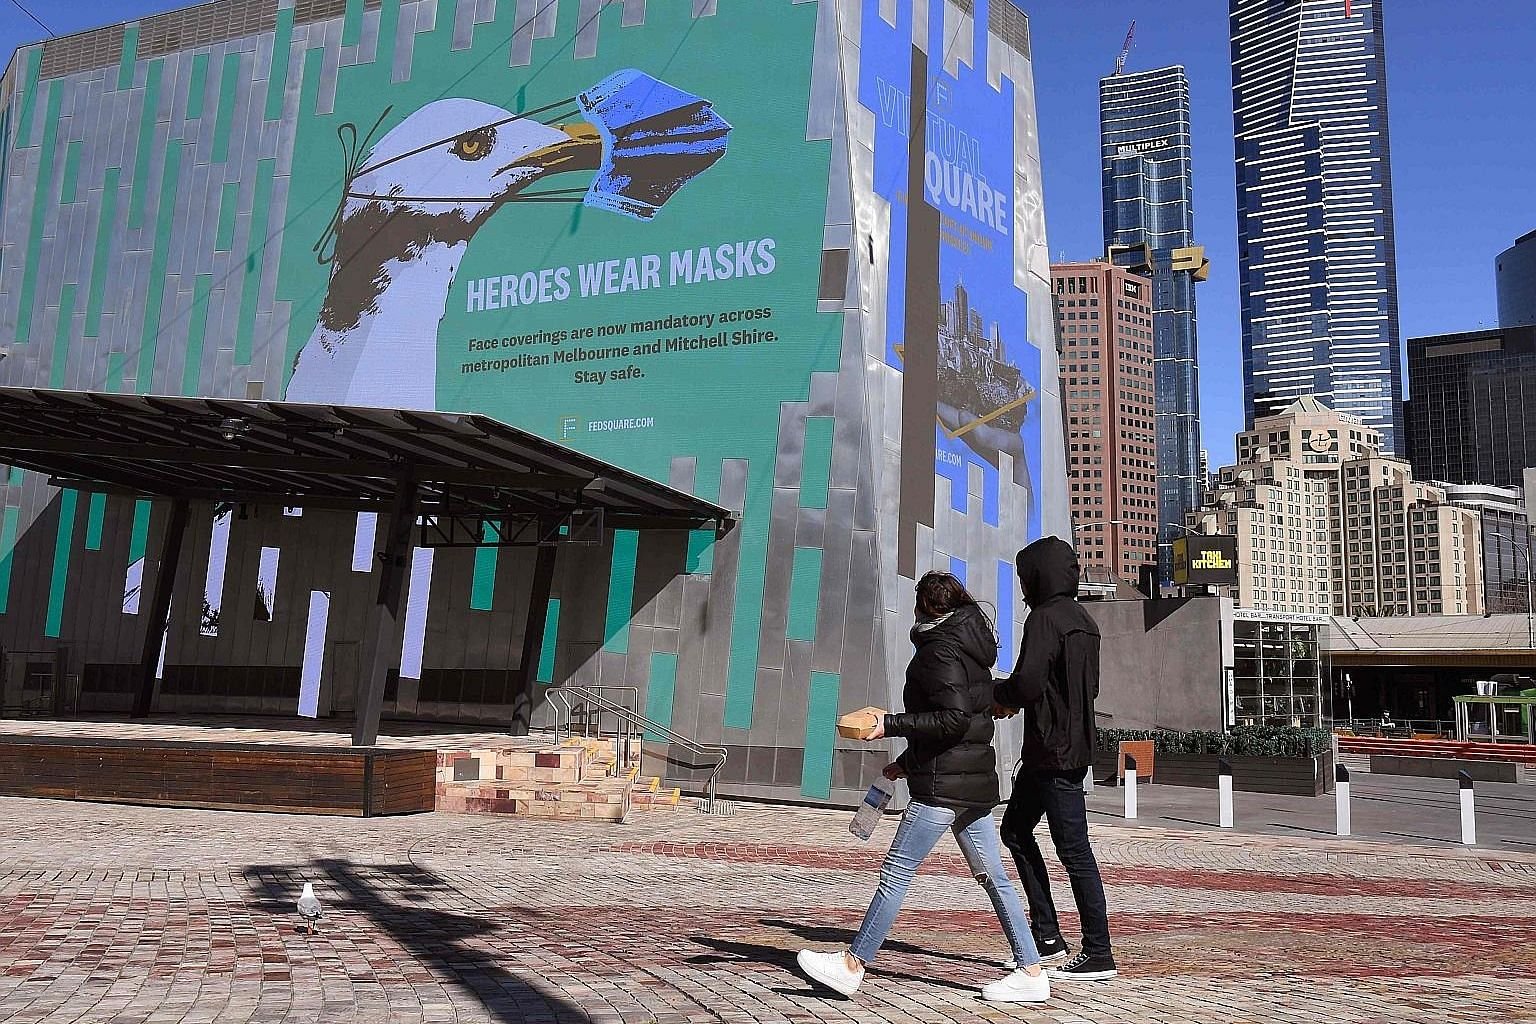 A mural in Melbourne's central business district urging people to wear a mask yesterday. Shops were shut and streets were deserted in the city of about five million people. Residents are still allowed to go out during the day for exercise and food, o